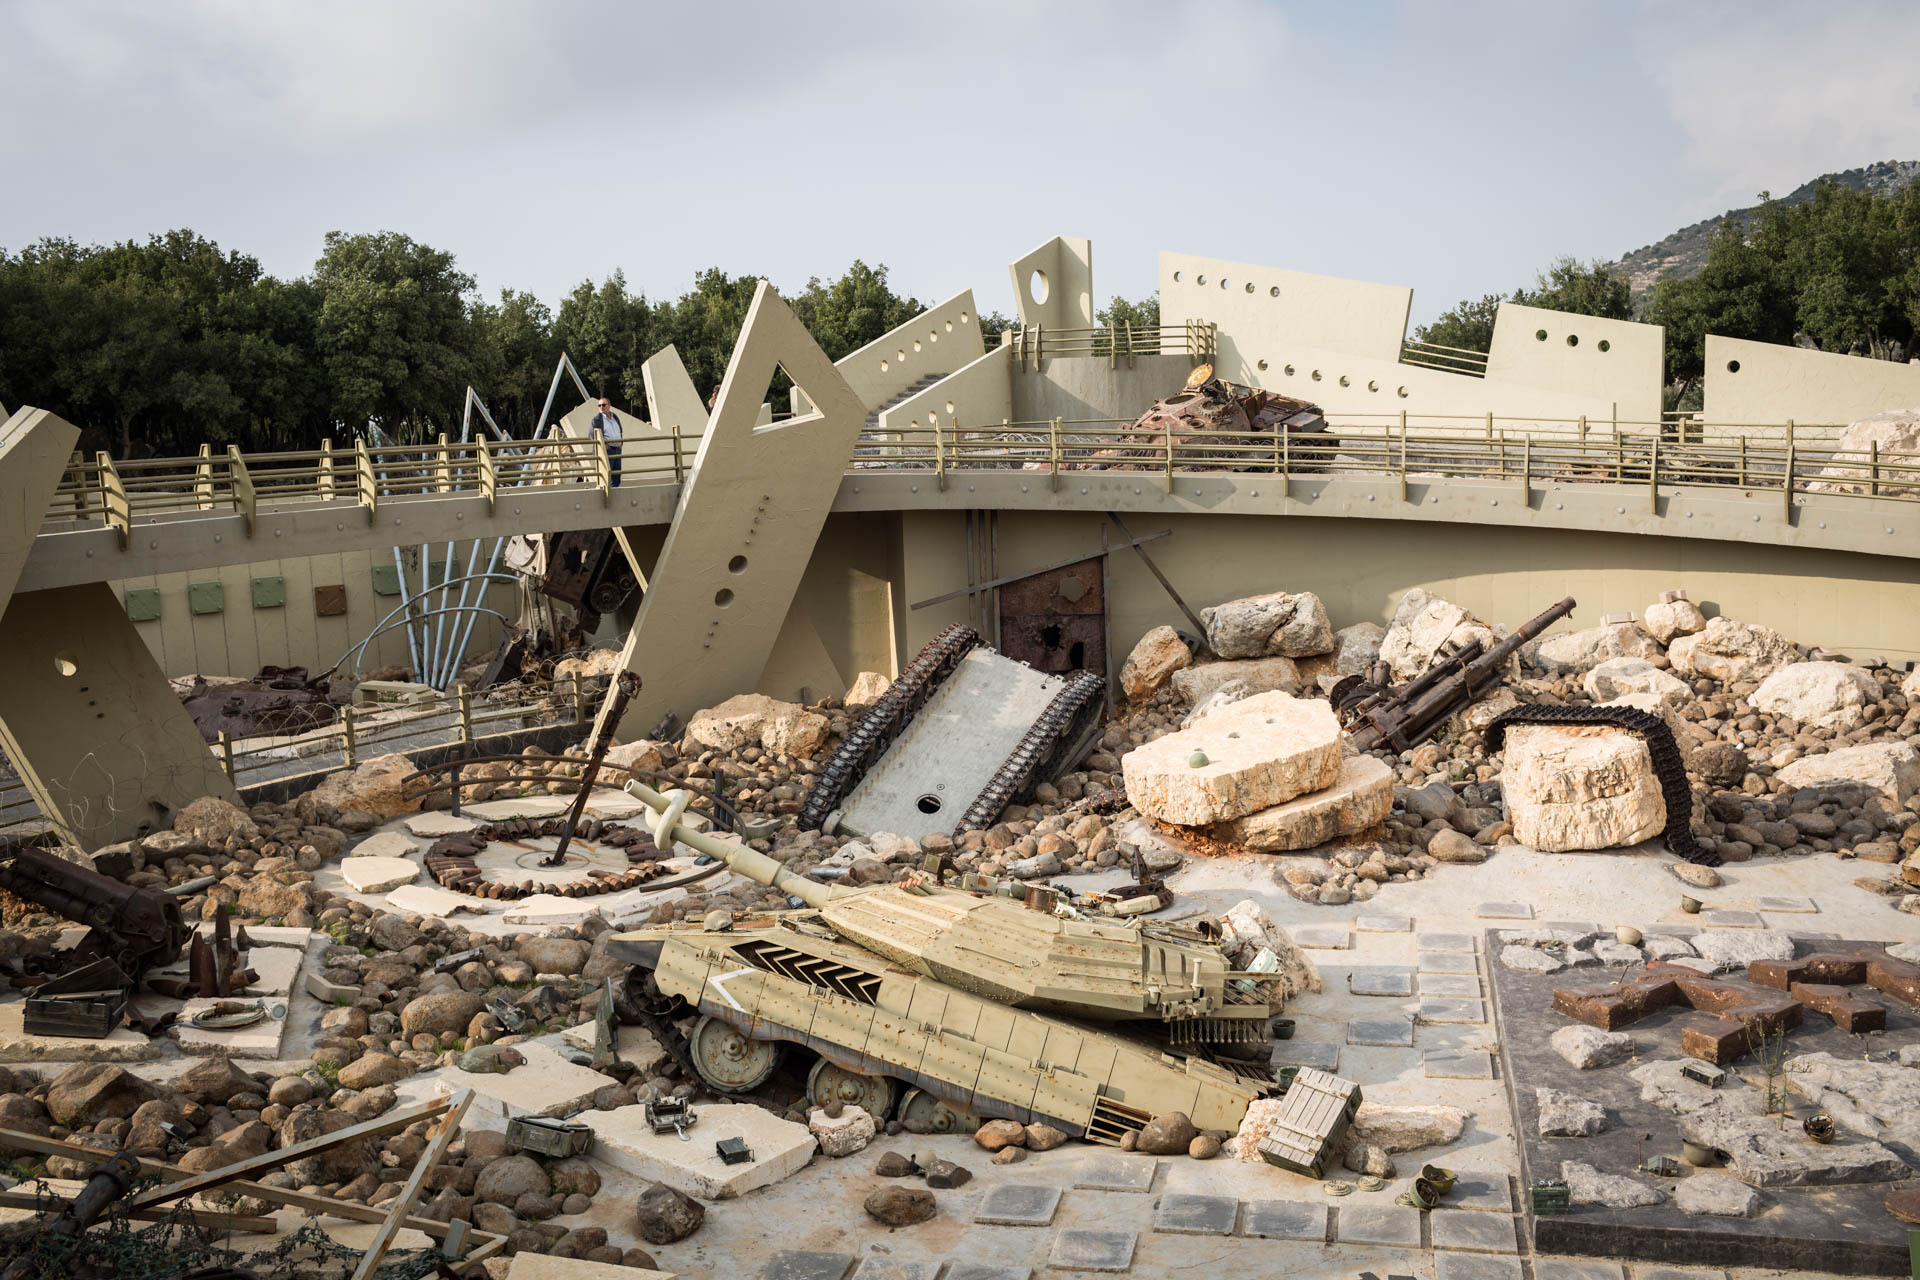 The abyss features several exhibits, such as an Israeli Merkava tank.